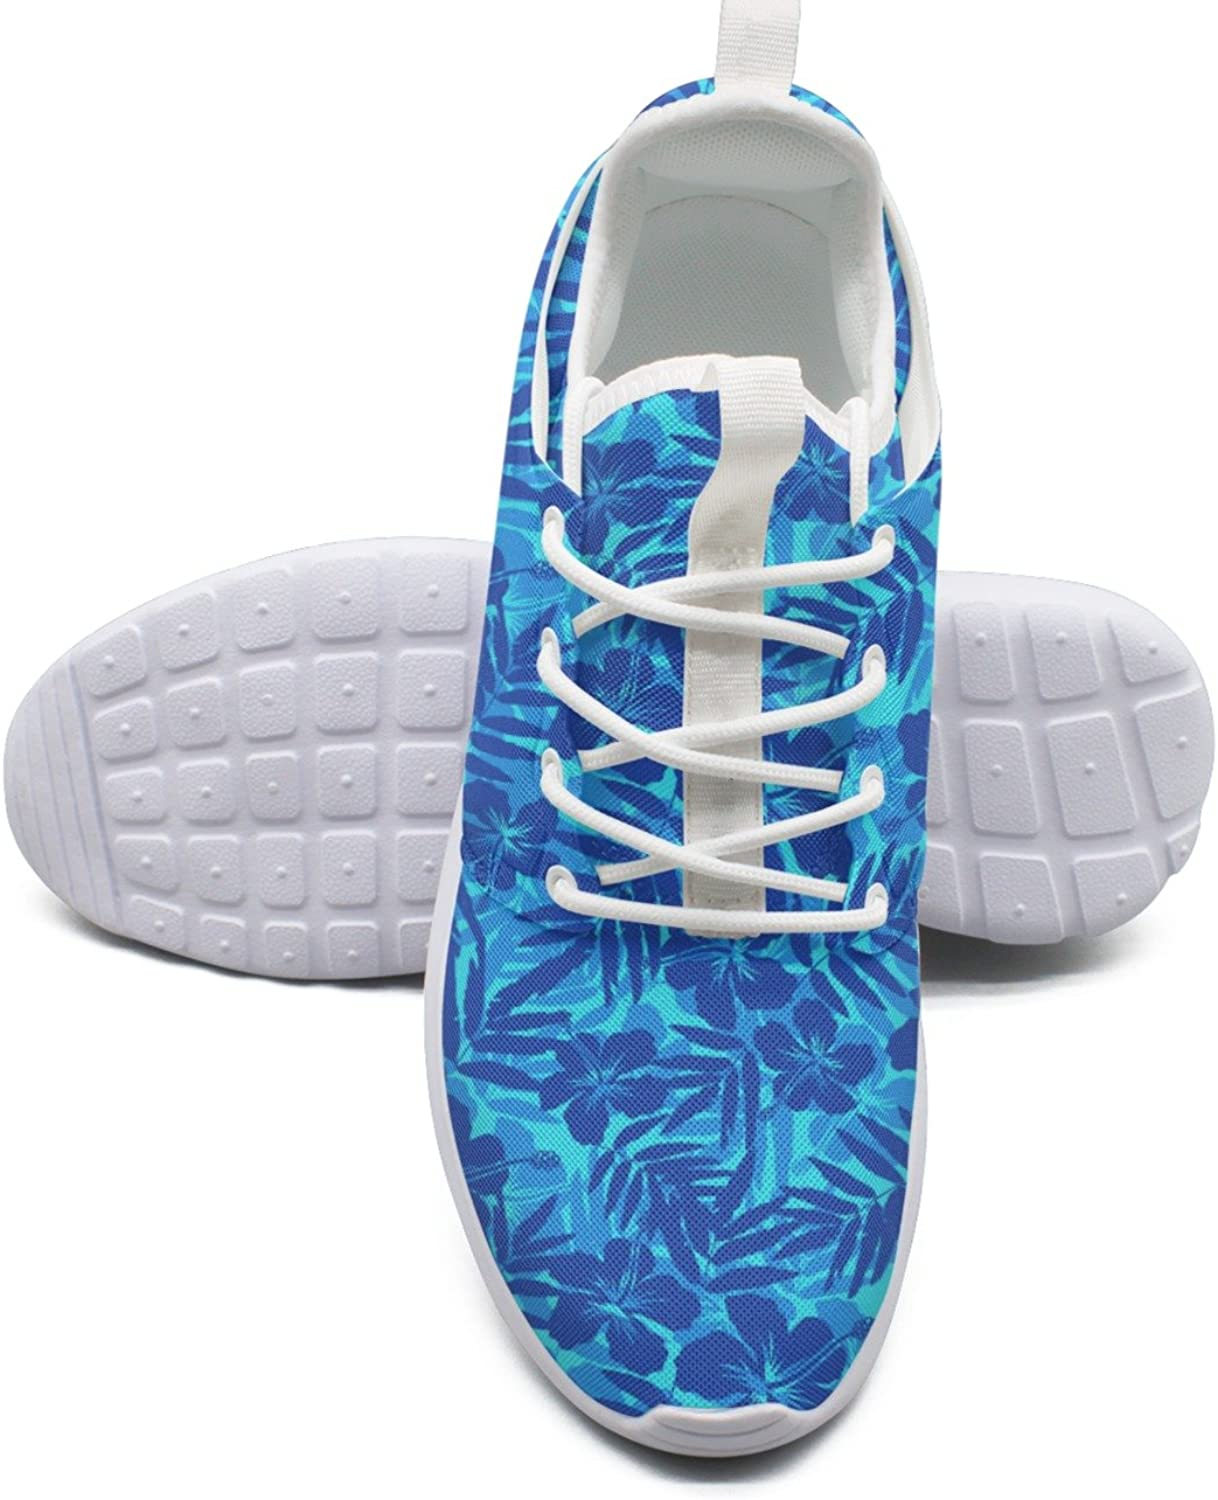 ERSER bluee Tropical Flowers Silhouettes Free Running shoes Women